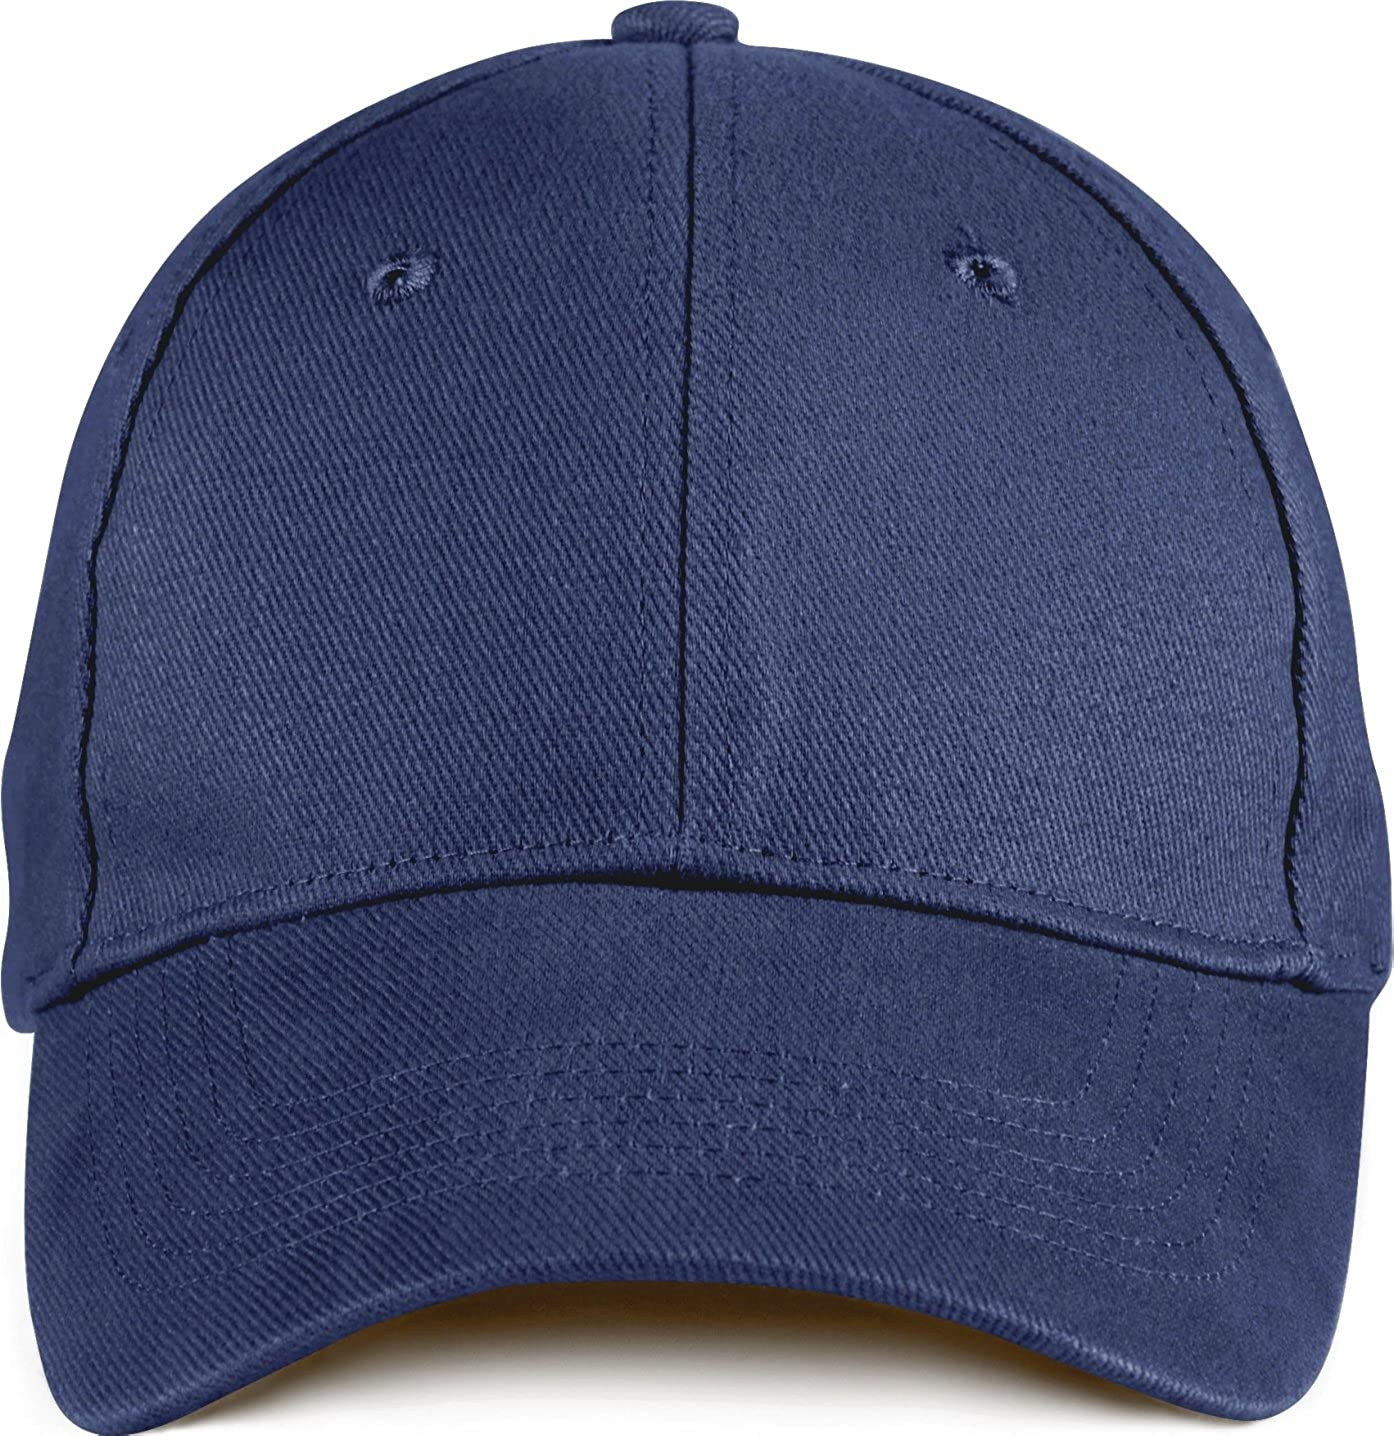 Amazon.com  Anvil Women s Brushed Structured Twill Cap  Sports   Outdoors 1b1113a617e